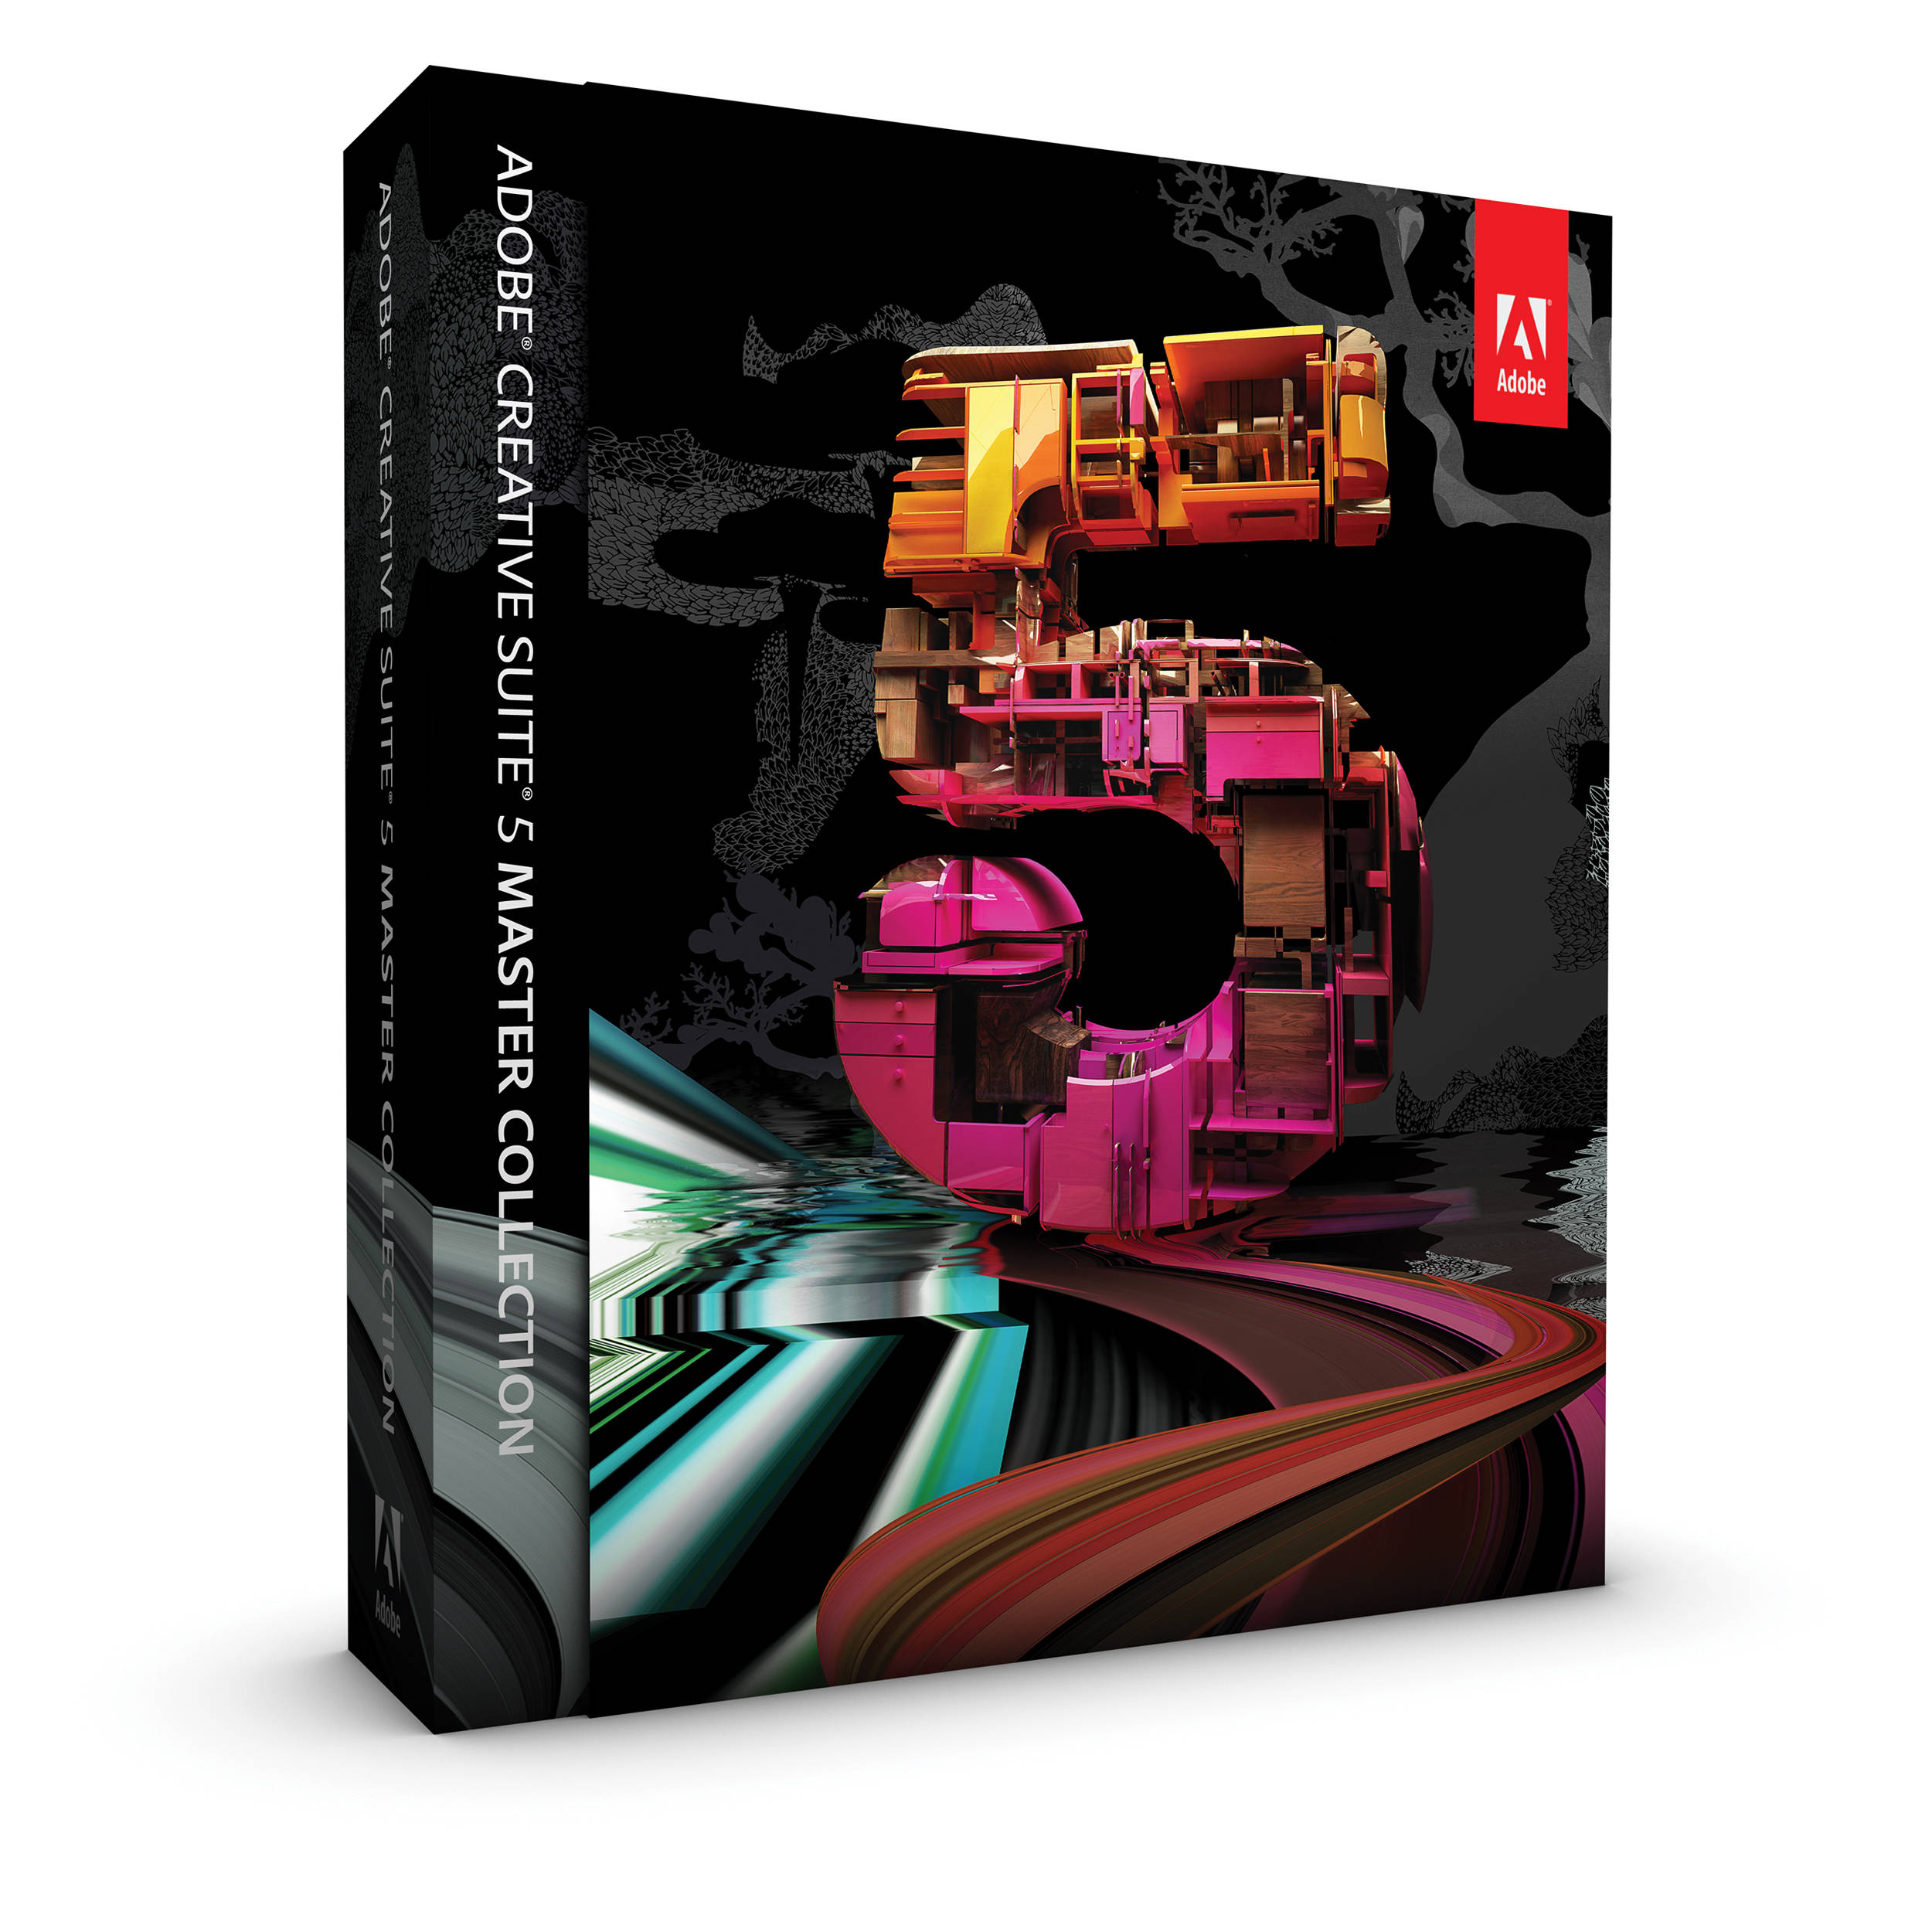 Adobe creative suite 5 cs5 activator